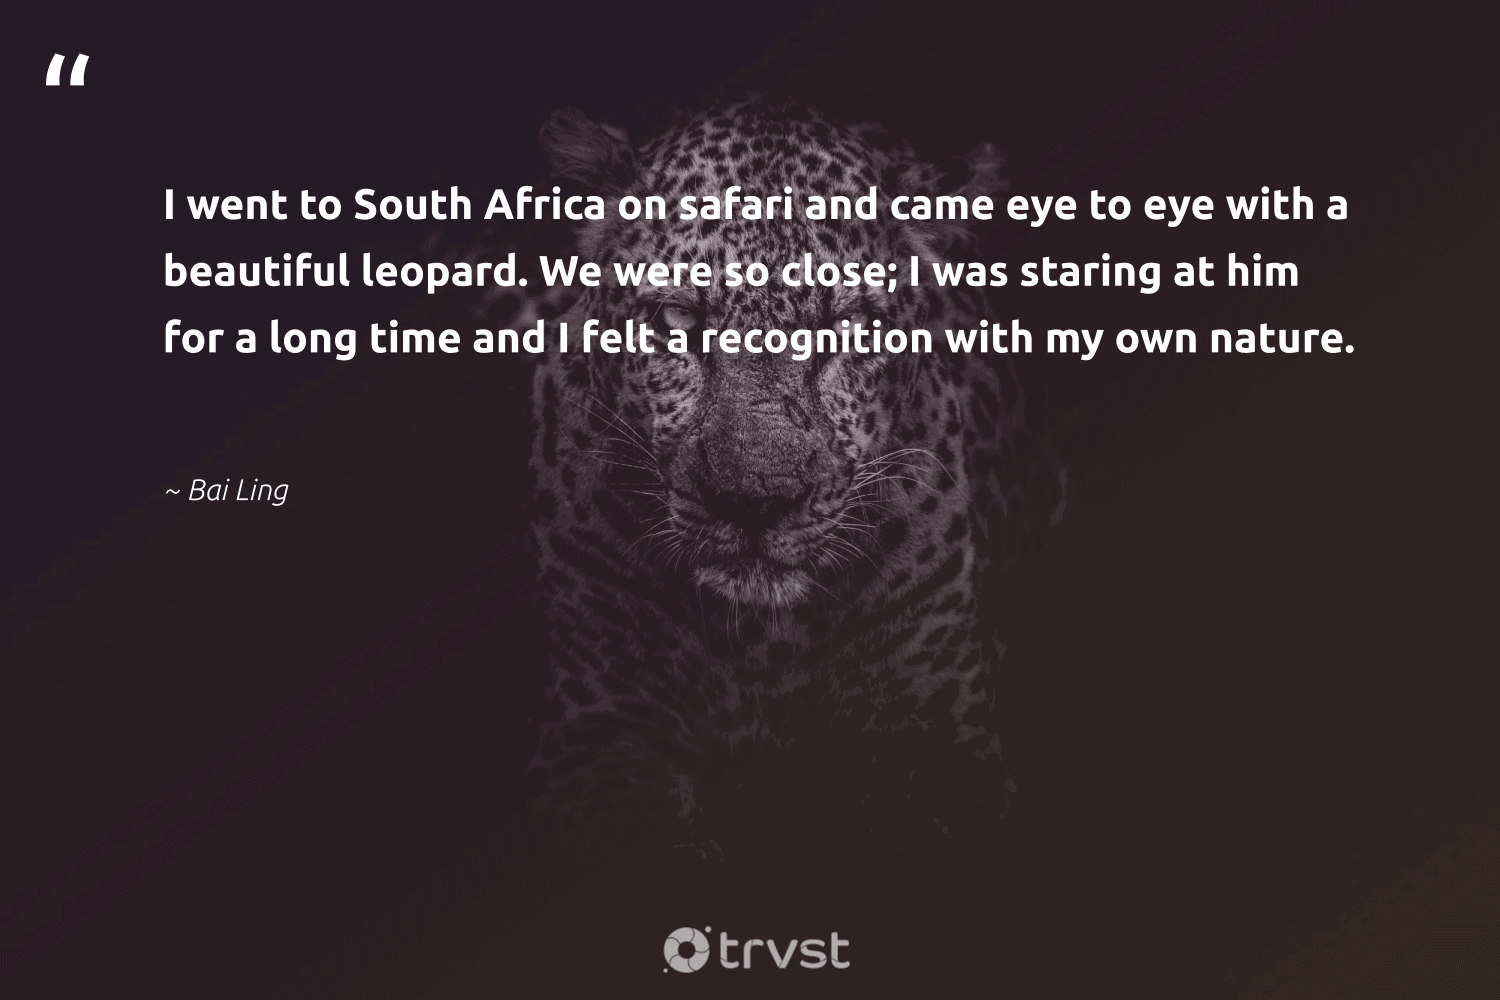 """""""I went to South Africa on safari and came eye to eye with a beautiful leopard. We were so close; I was staring at him for a long time and I felt a recognition with my own nature.""""  - Bai Ling #trvst #quotes #southafrica #africa #nature #safari #leopard #conservation #amazingworld #climatechange #gogreen #mothernature"""